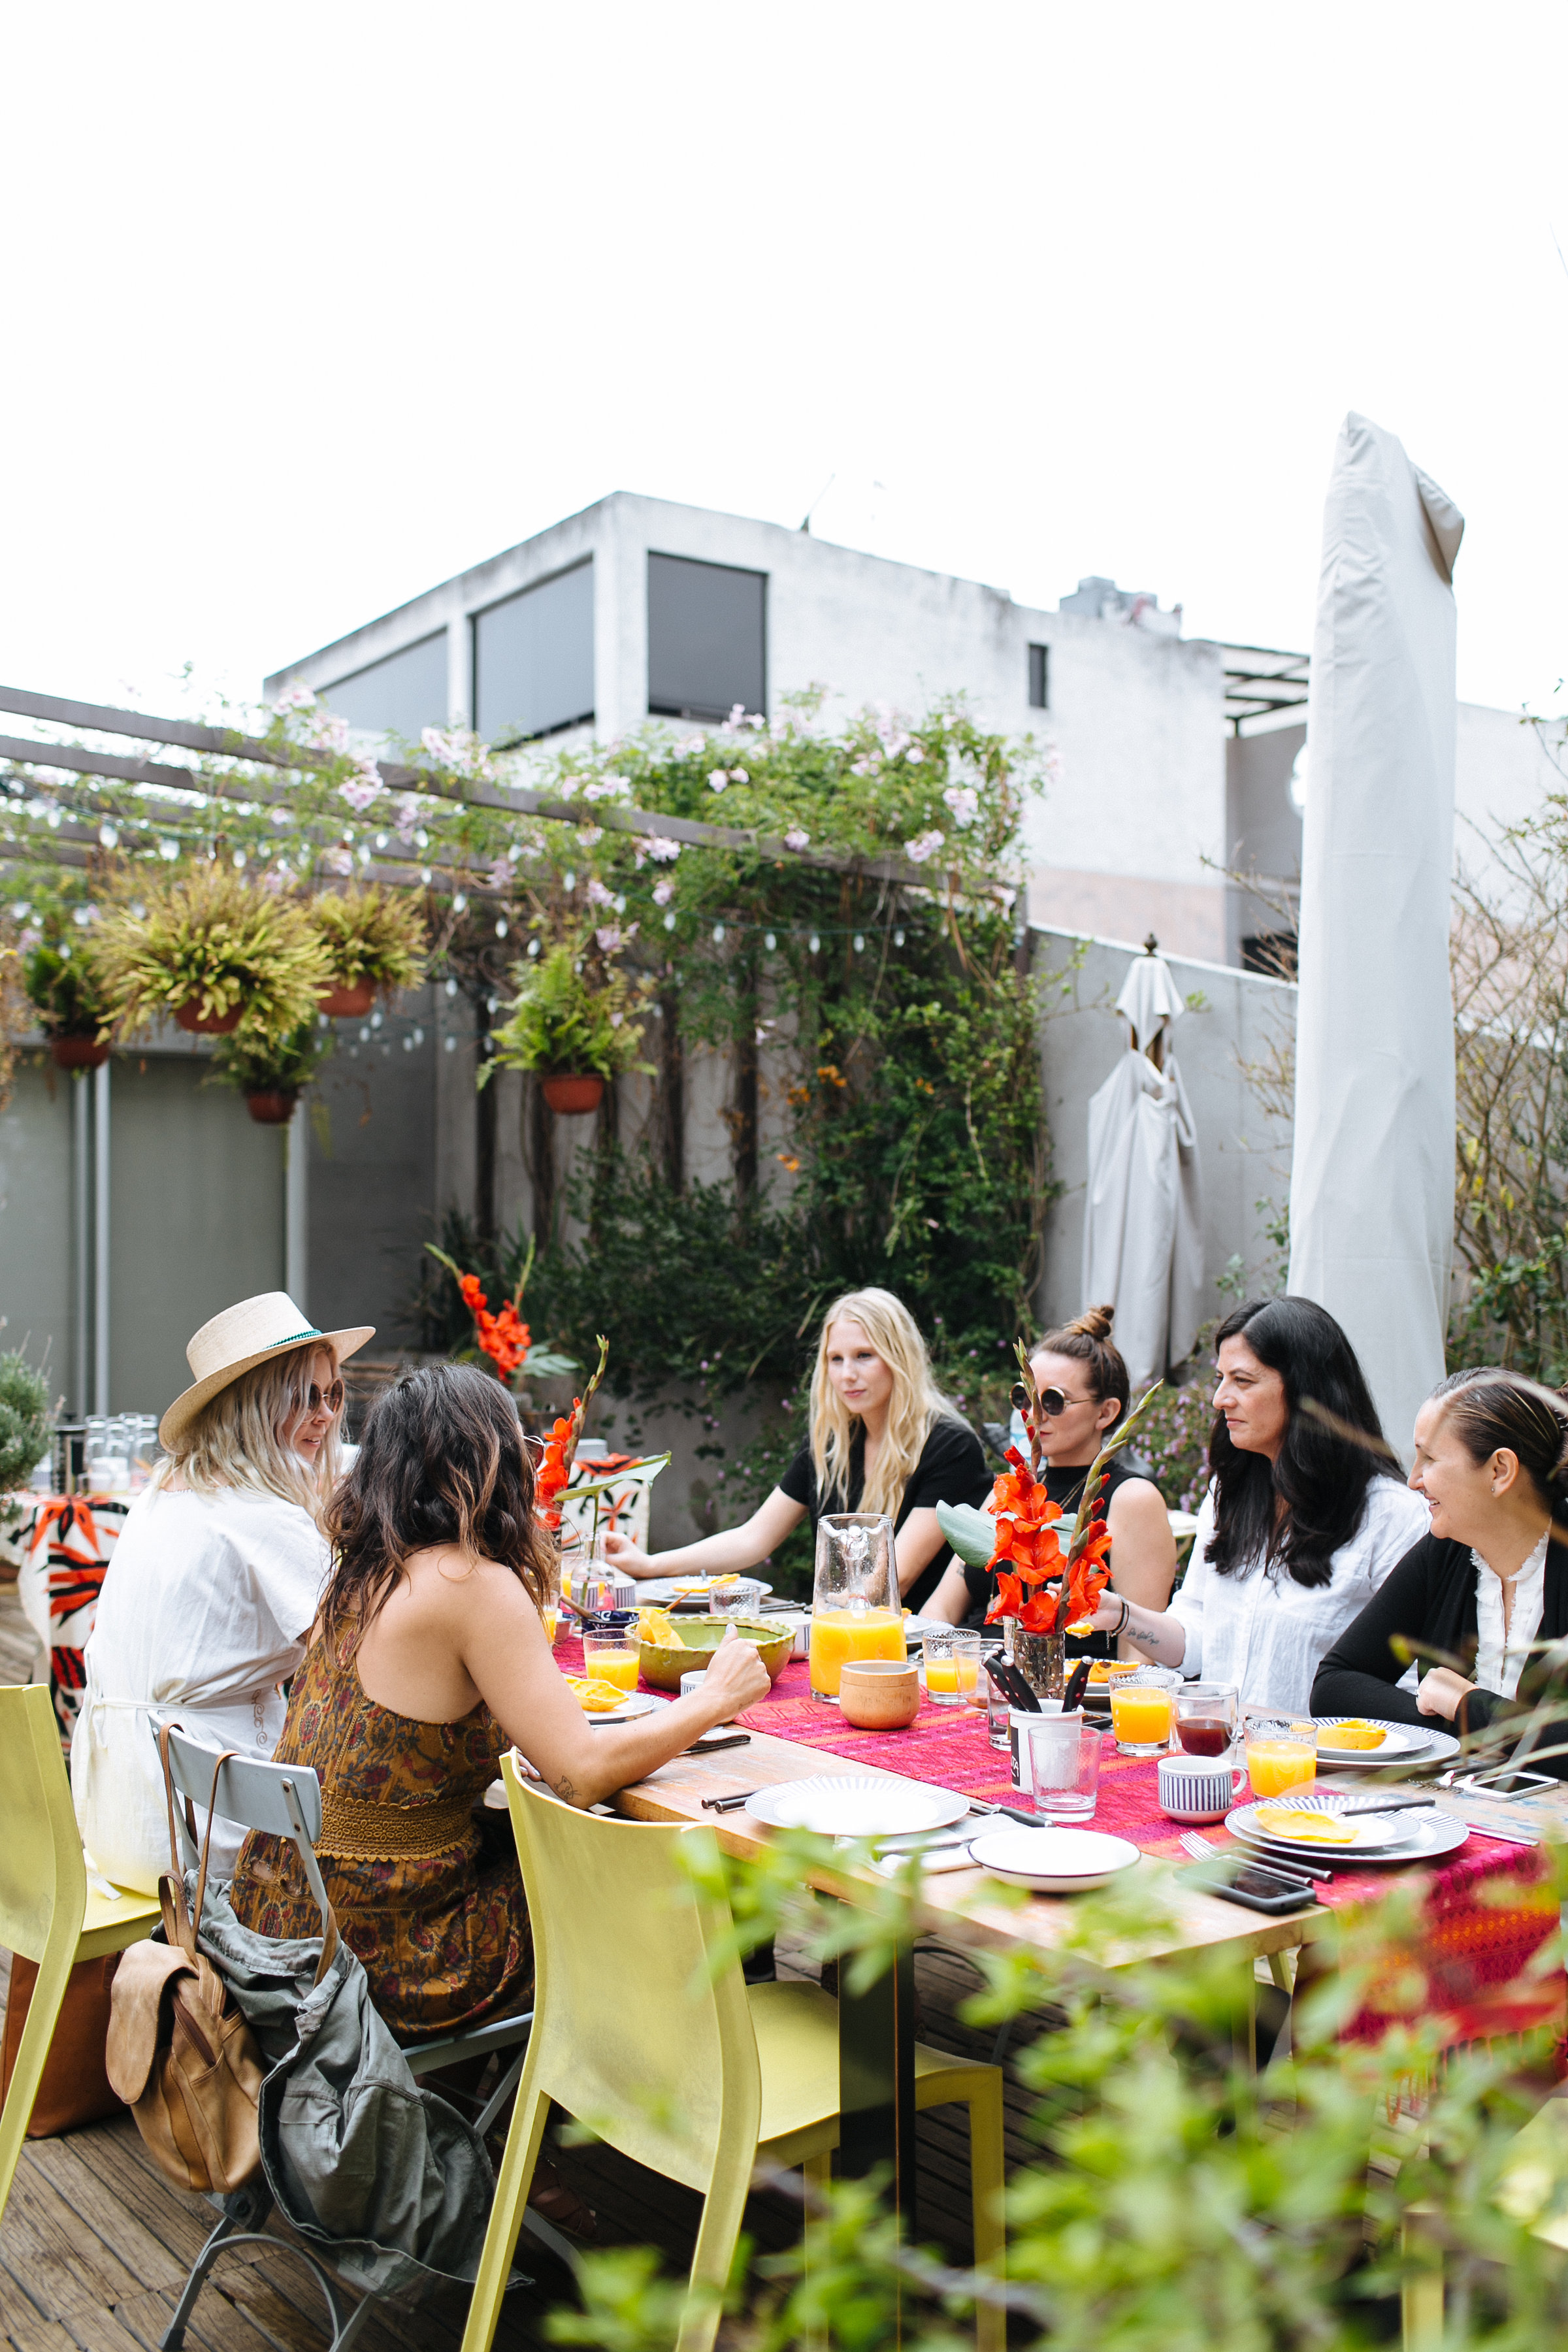 Five women eating Mexican Food on the rooftop.